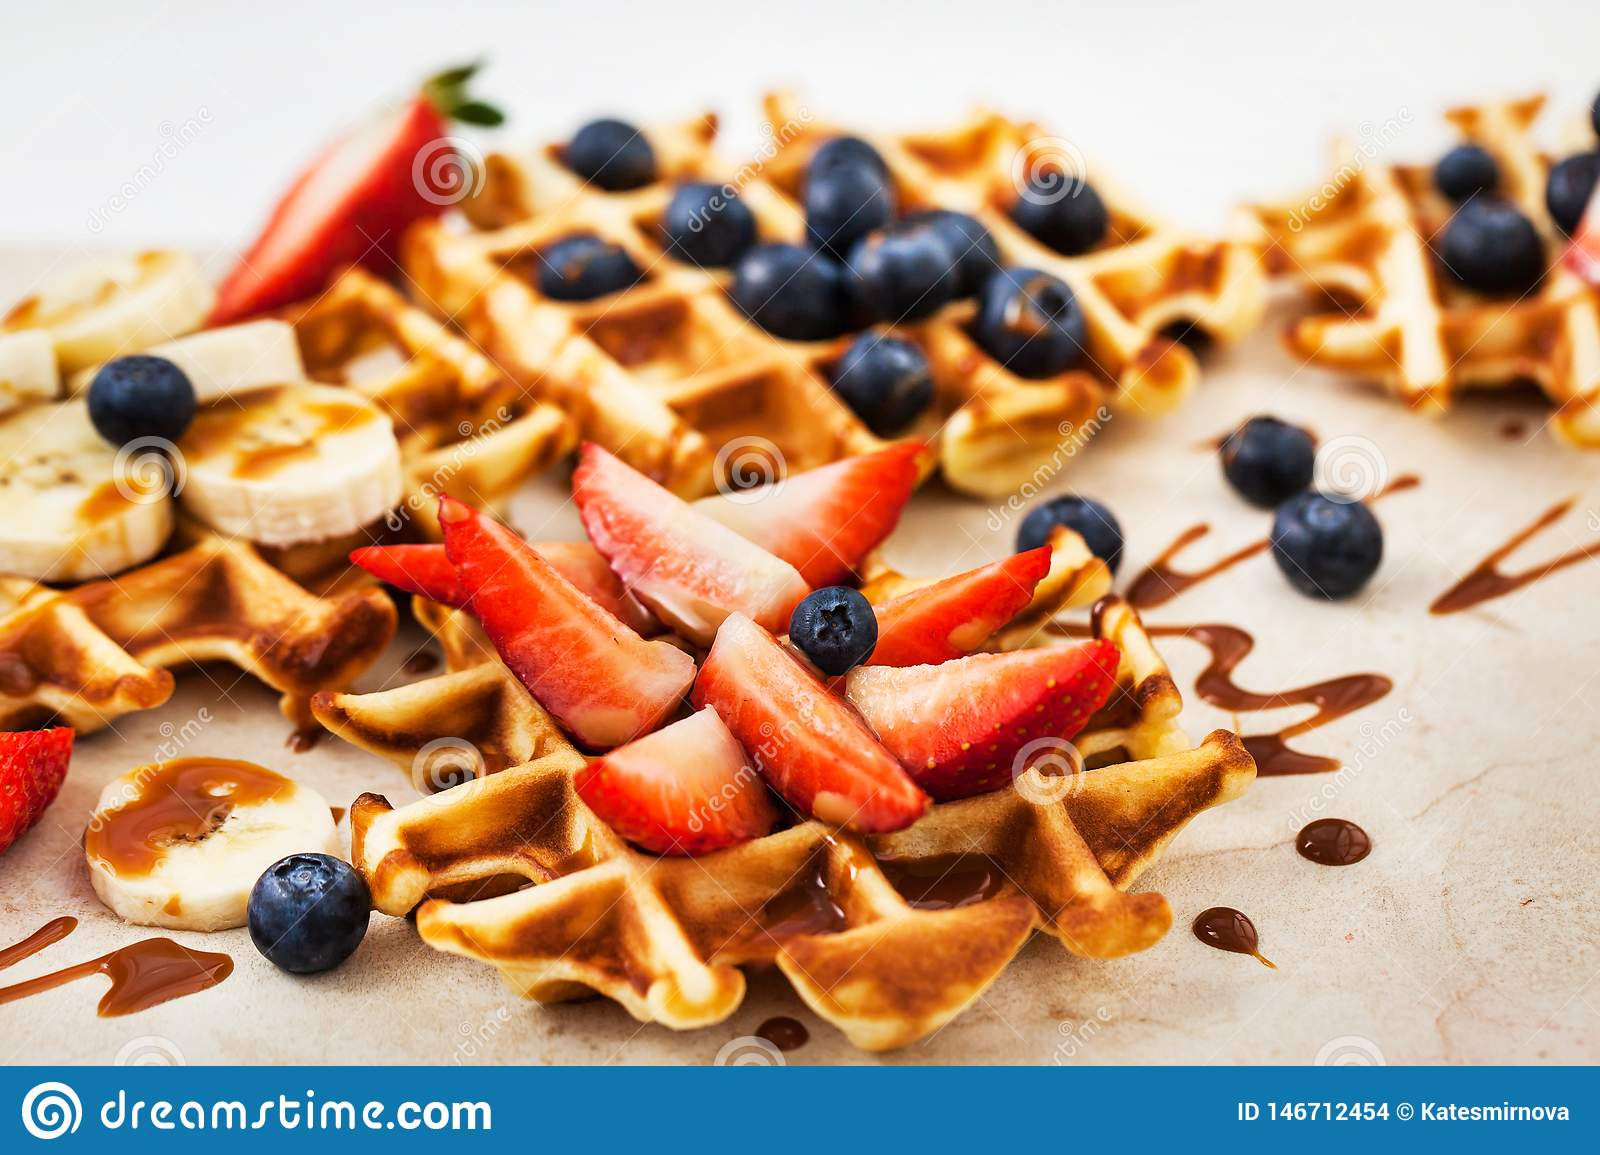 Fresh homemade waffles decorated with blueberries, strawberries and bananas